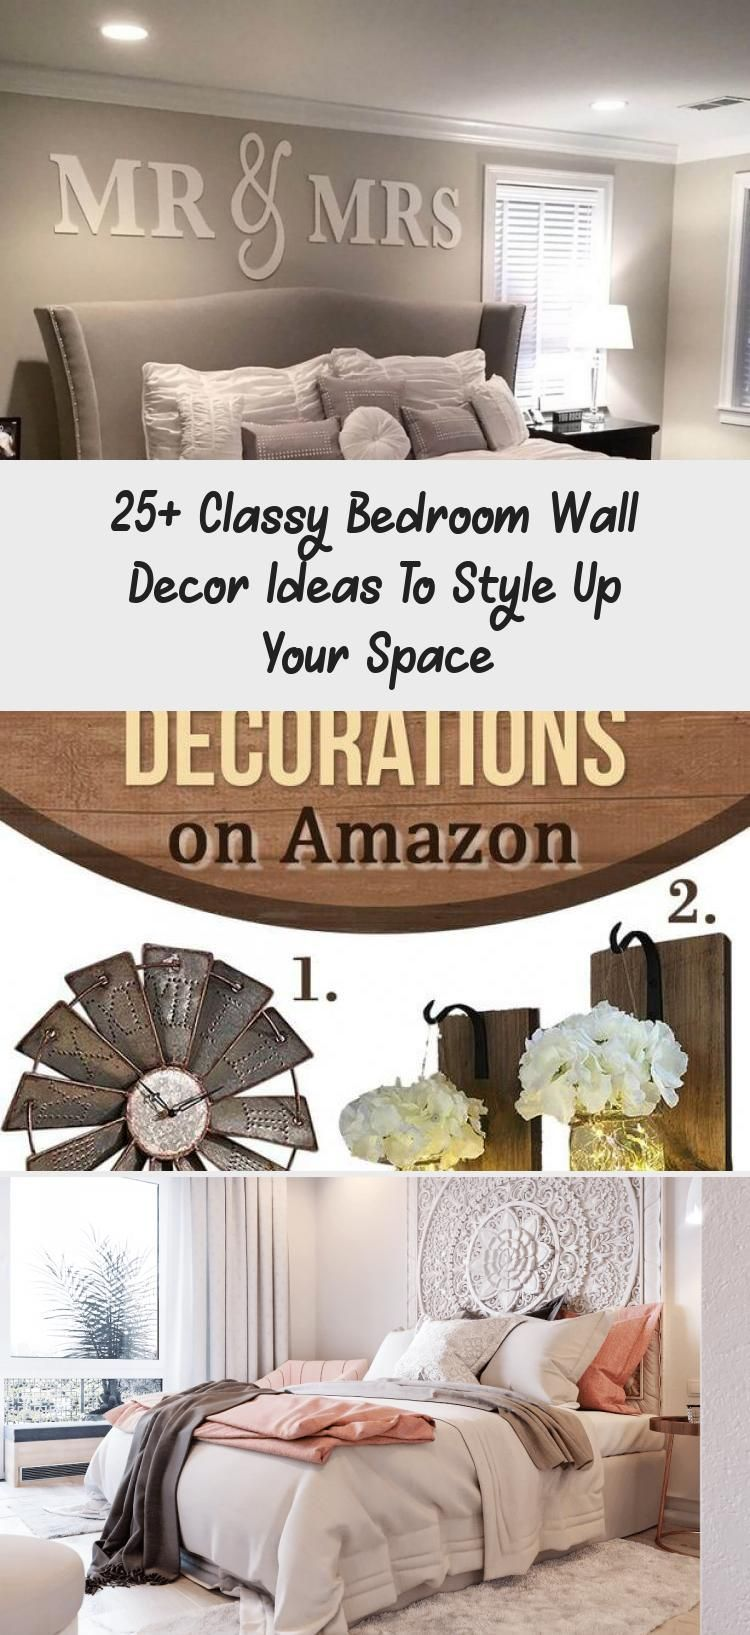 25 Classy Bedroom Wall Decor Ideas To Style Up Your Space